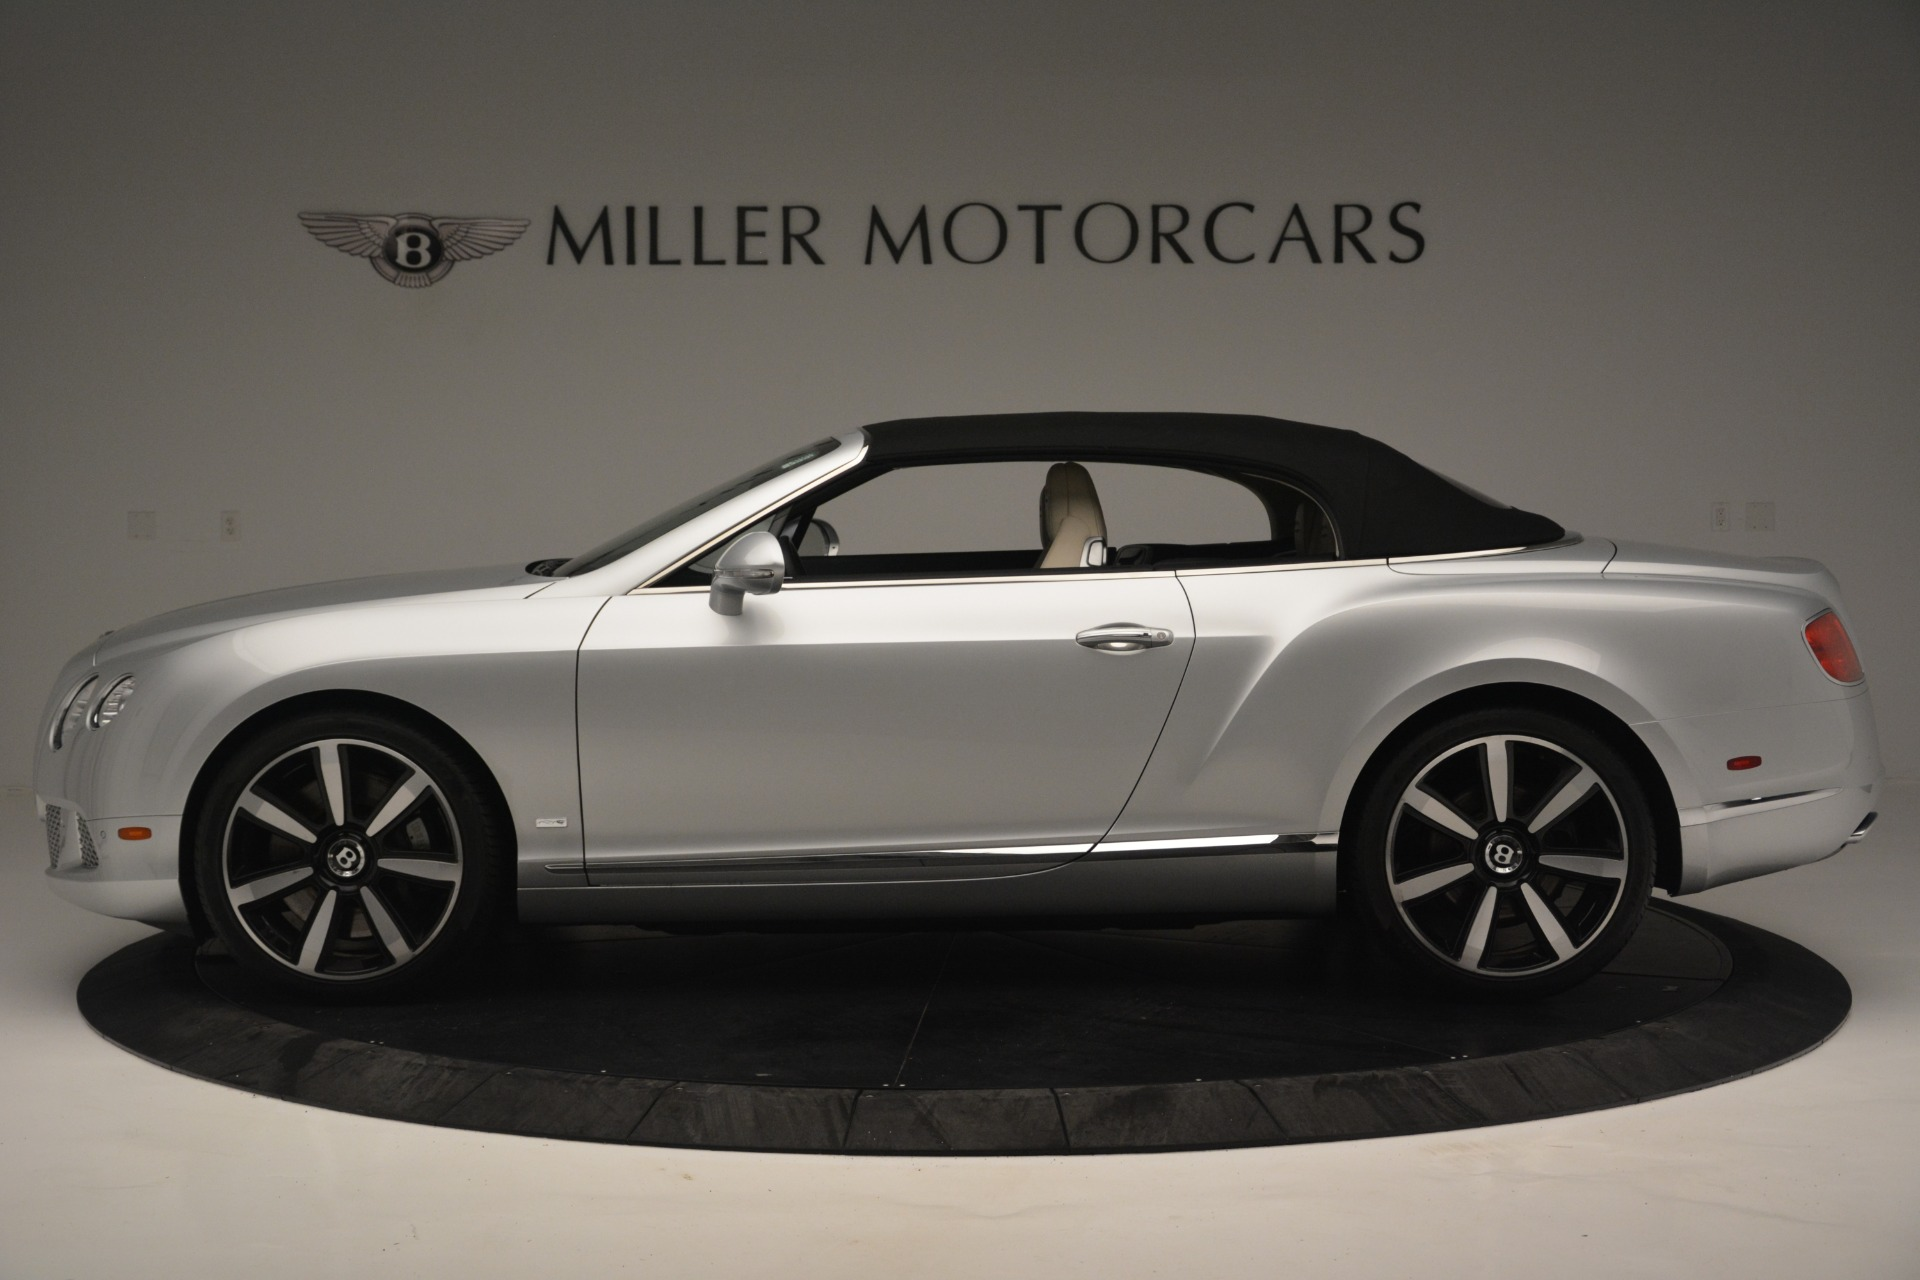 Used 2013 Bentley Continental GT W12 Le Mans Edition For Sale In Greenwich, CT 2519_p11